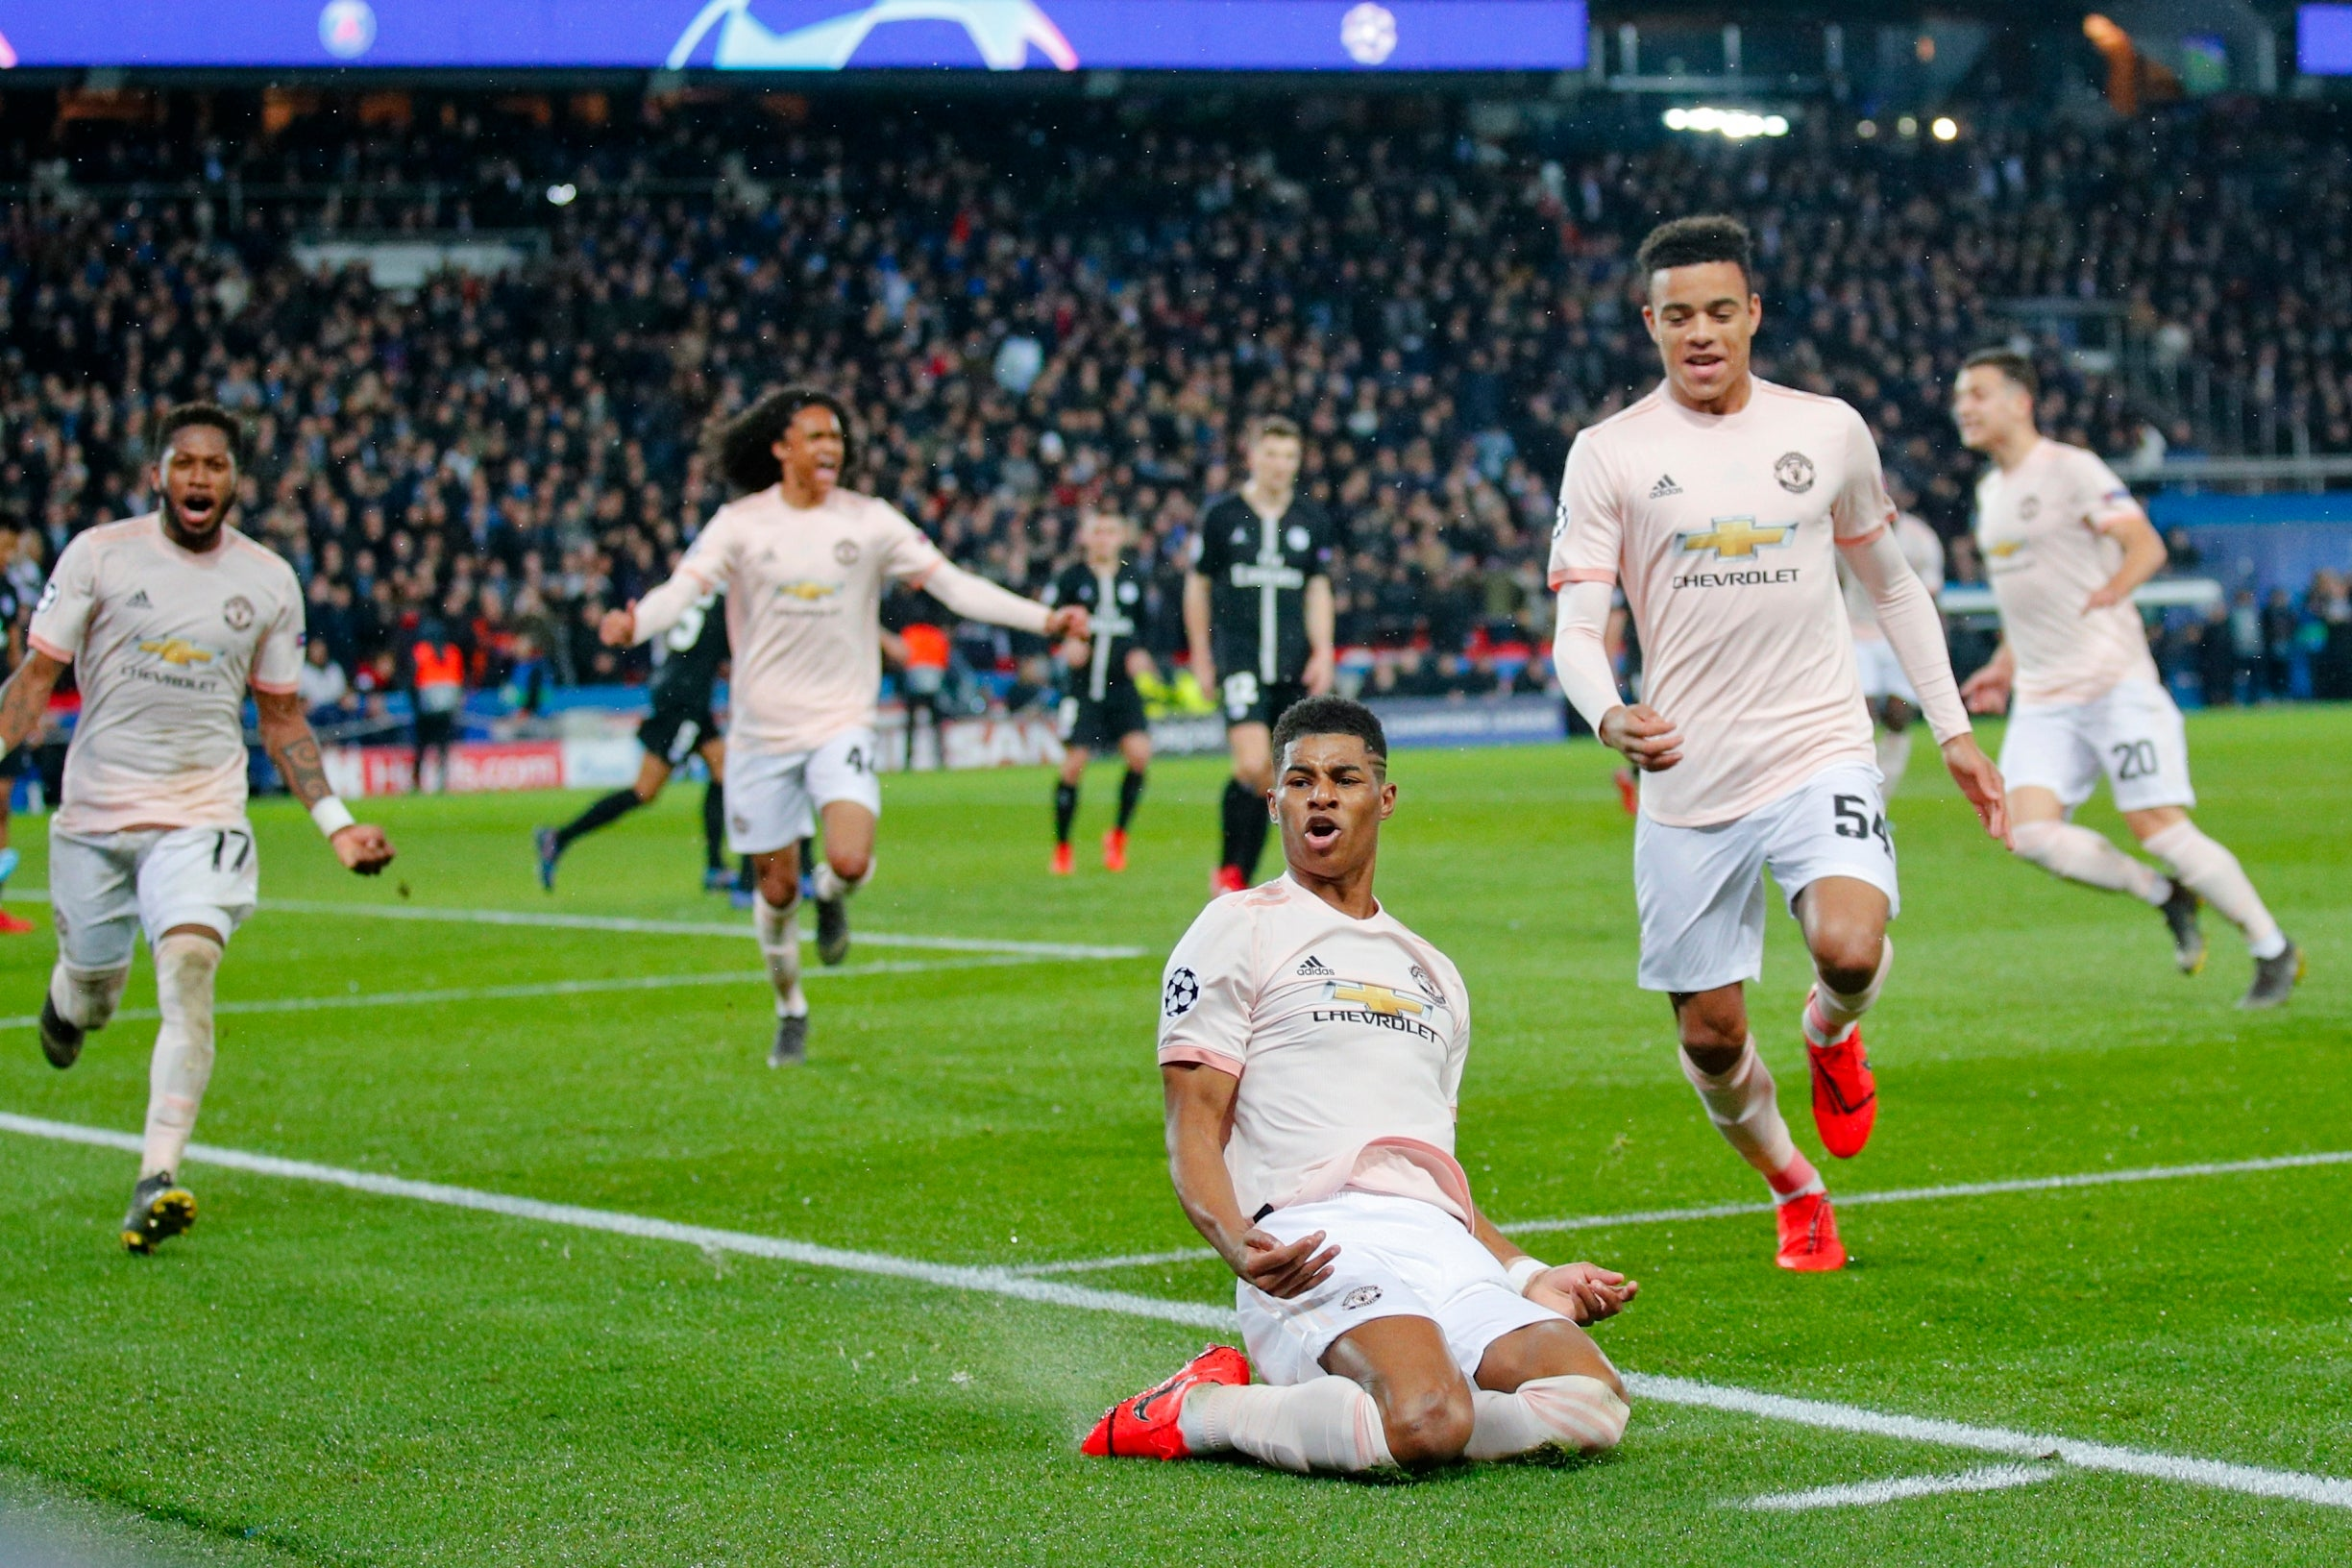 psg vs manchester united how one picture of marcus rashford in paris revealed ole gunnar. Black Bedroom Furniture Sets. Home Design Ideas